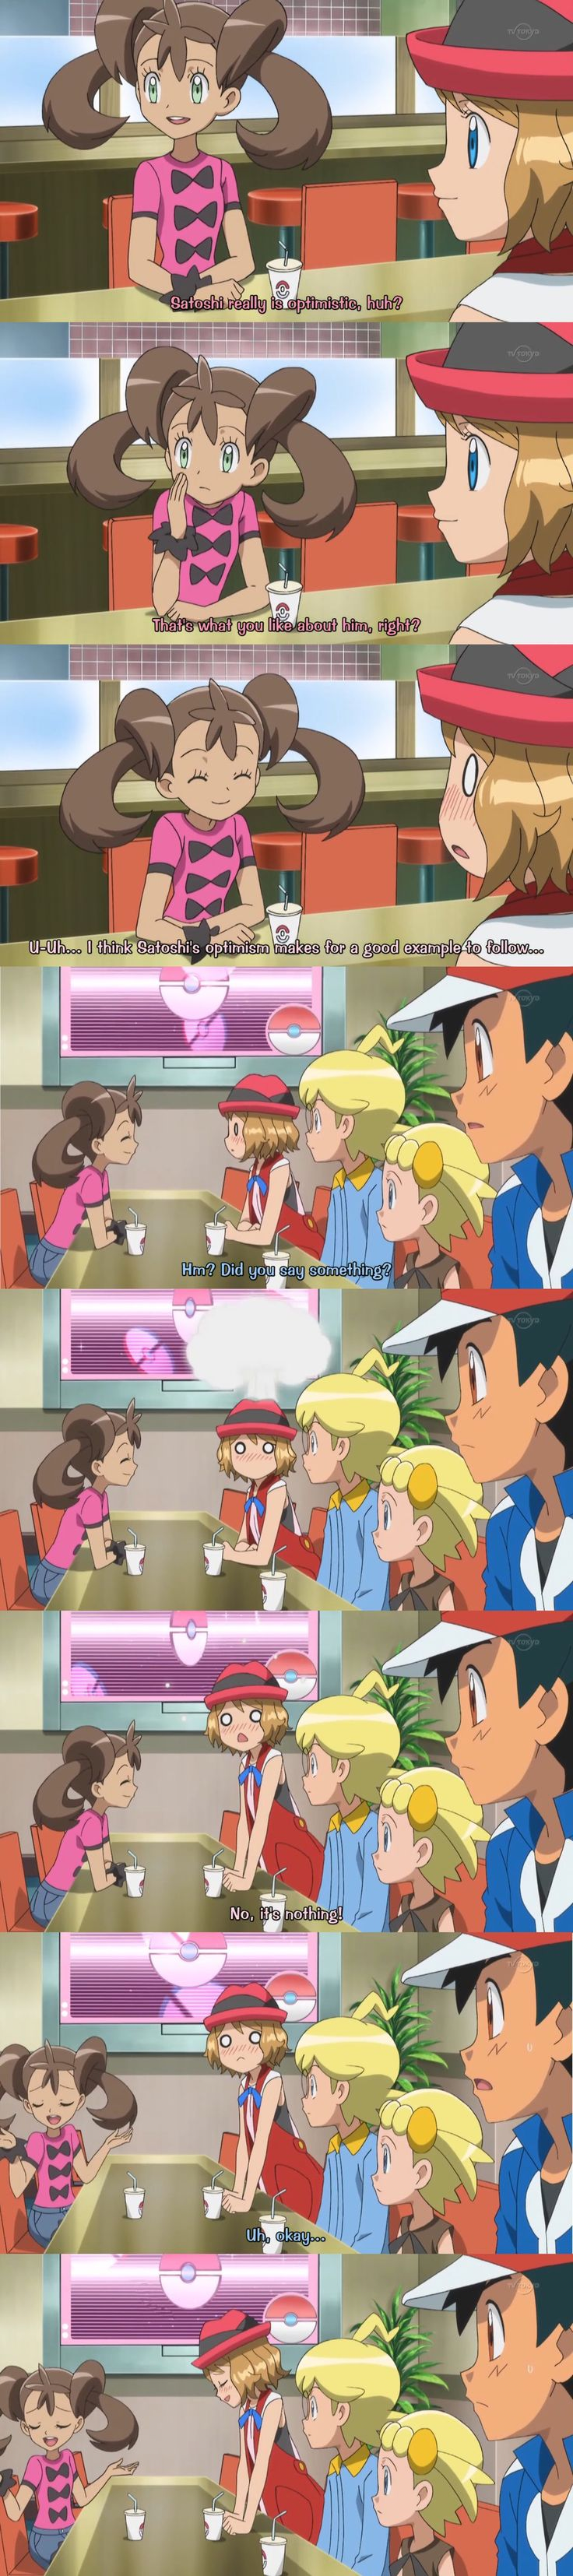 AmourShipping by Darkus17.deviantart.com on @DeviantArt